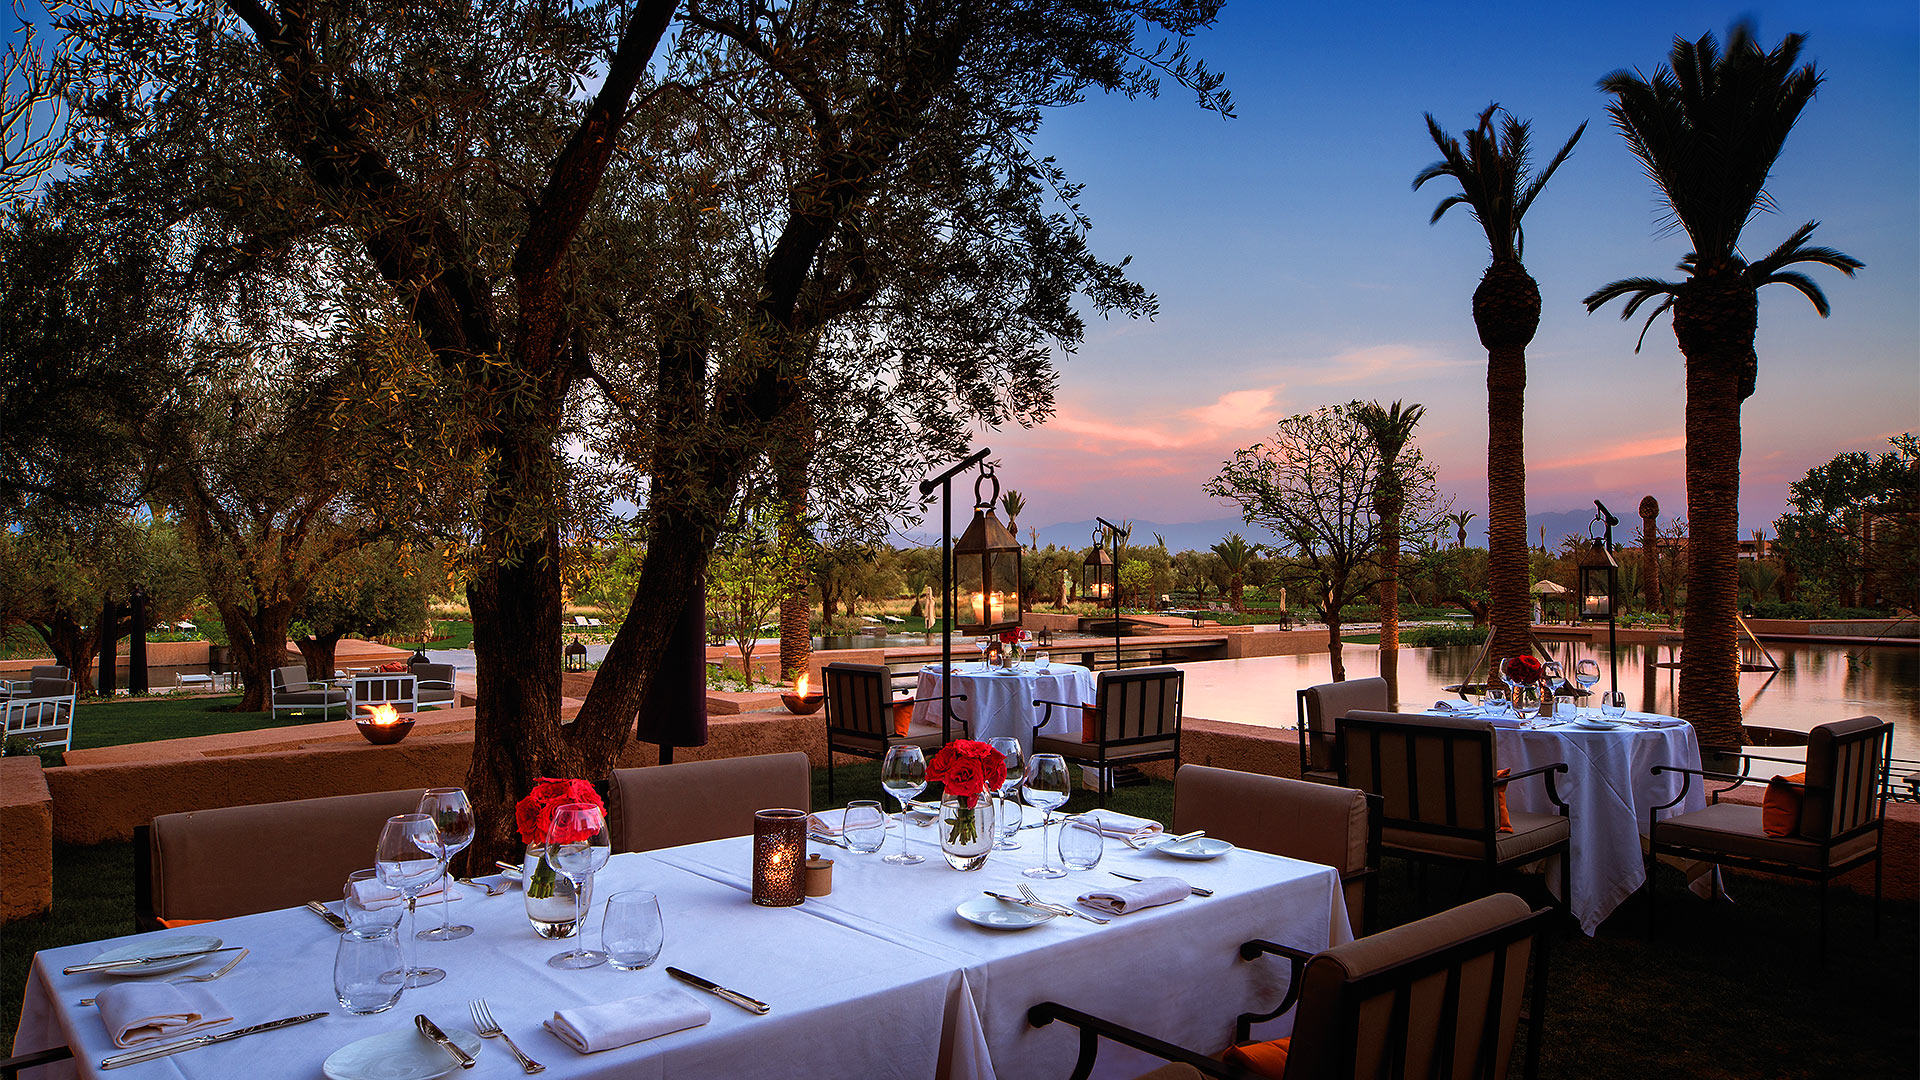 la-caravanne-restaurant-royal-palm-marrakech-05